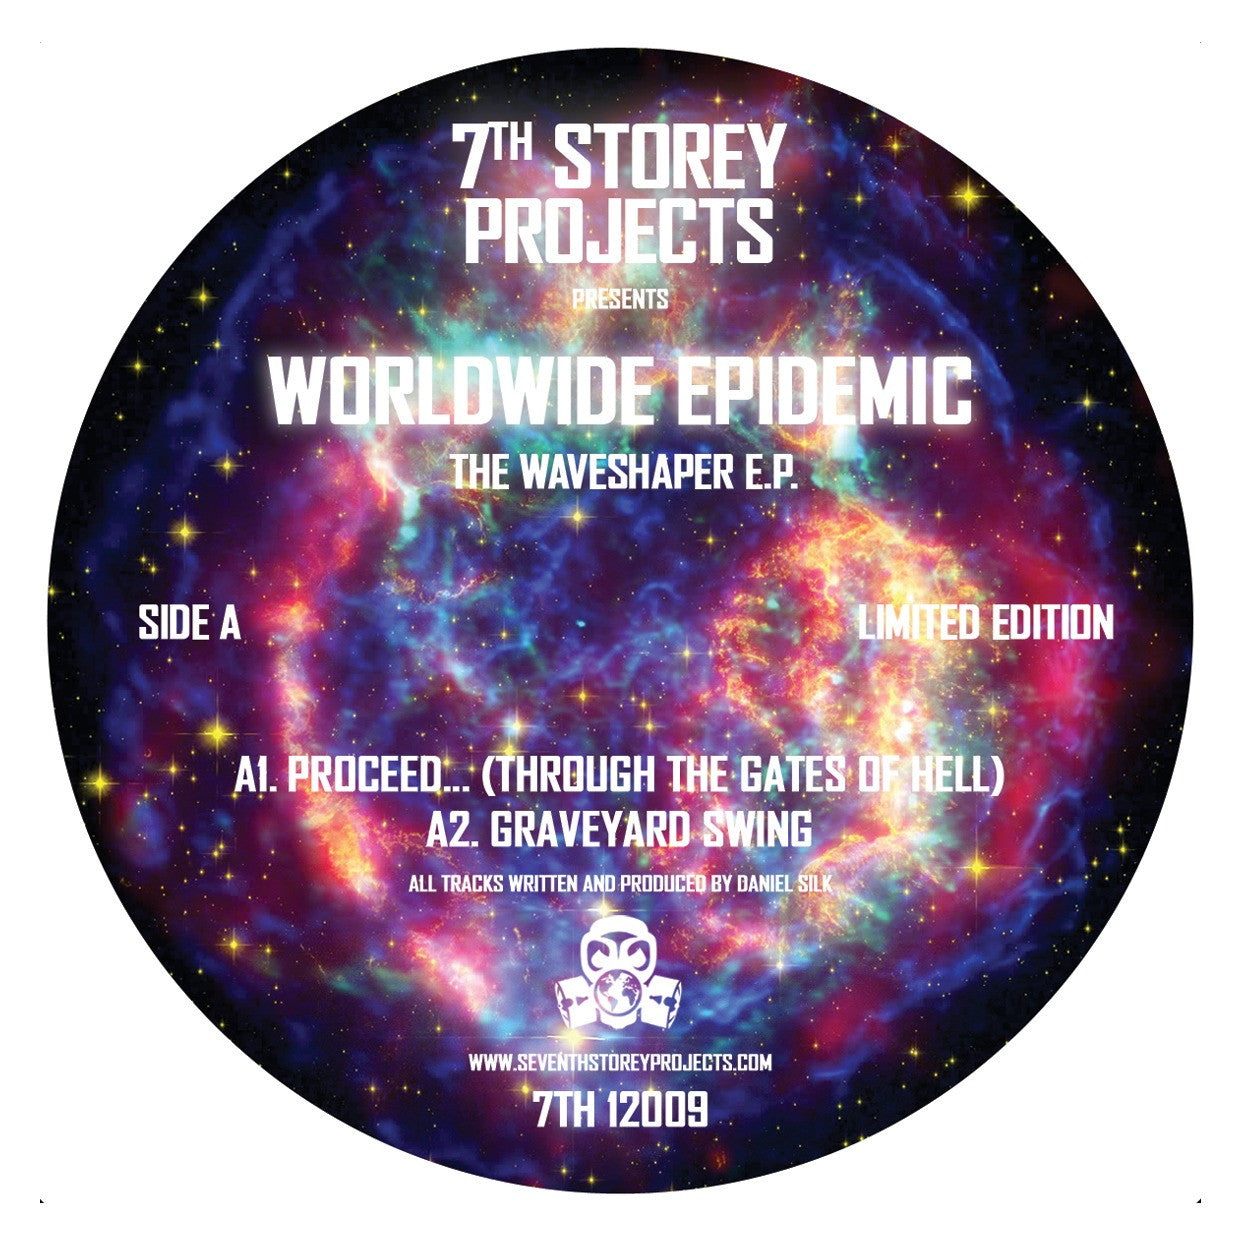 Worldwide Epidemic - The Waveshaper EP , Vinyl - 7th Storey Projects, Unearthed Sounds